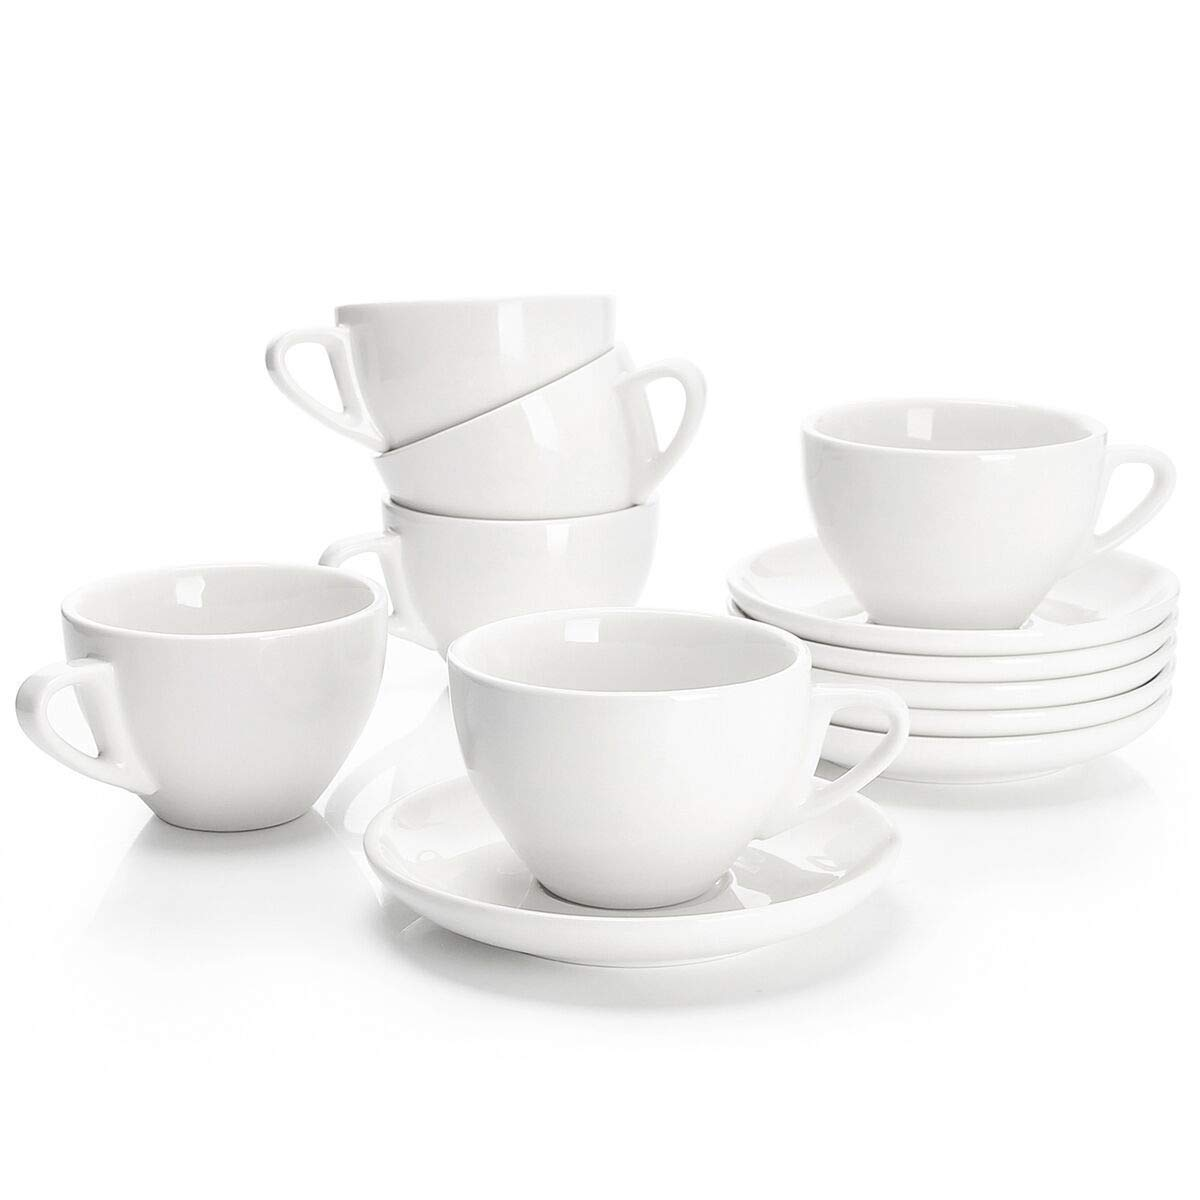 Sweese 4306 Porcelain Cappuccino Cups with Saucers - 6 Ounce for Specialty Coffee Drinks, Latte, Cafe Mocha and Tea - Set of 6, White